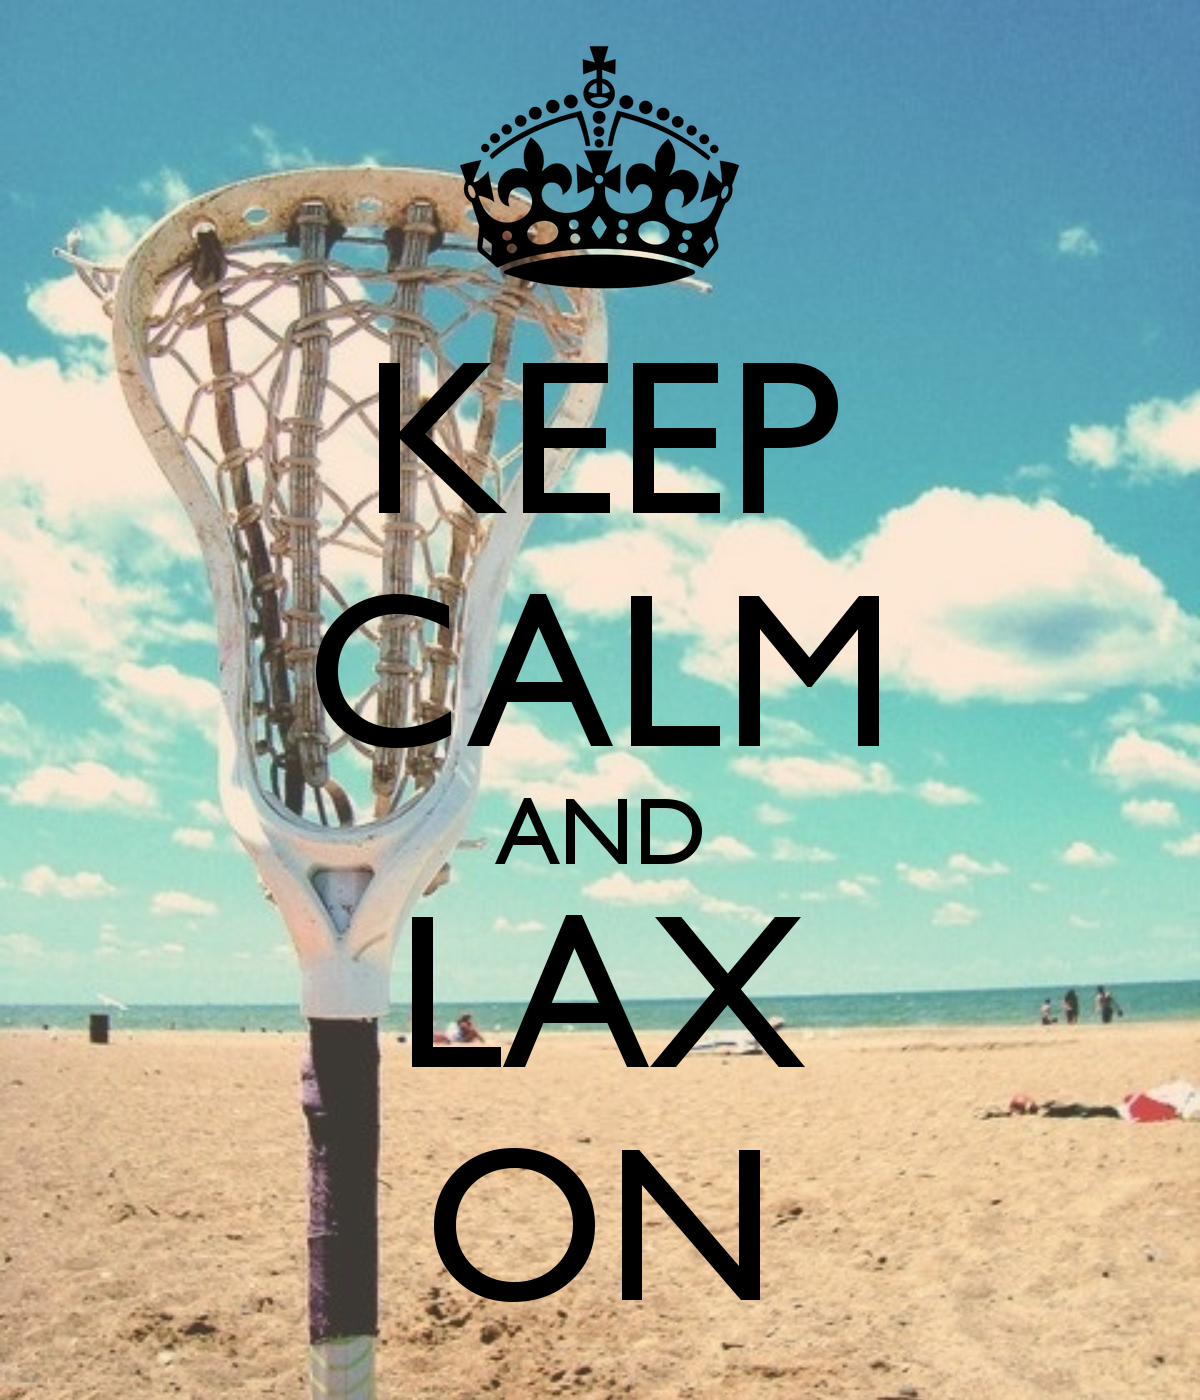 KEEP CALM AND LAX ON - KEEP CALM AND CARRY ON Image ...